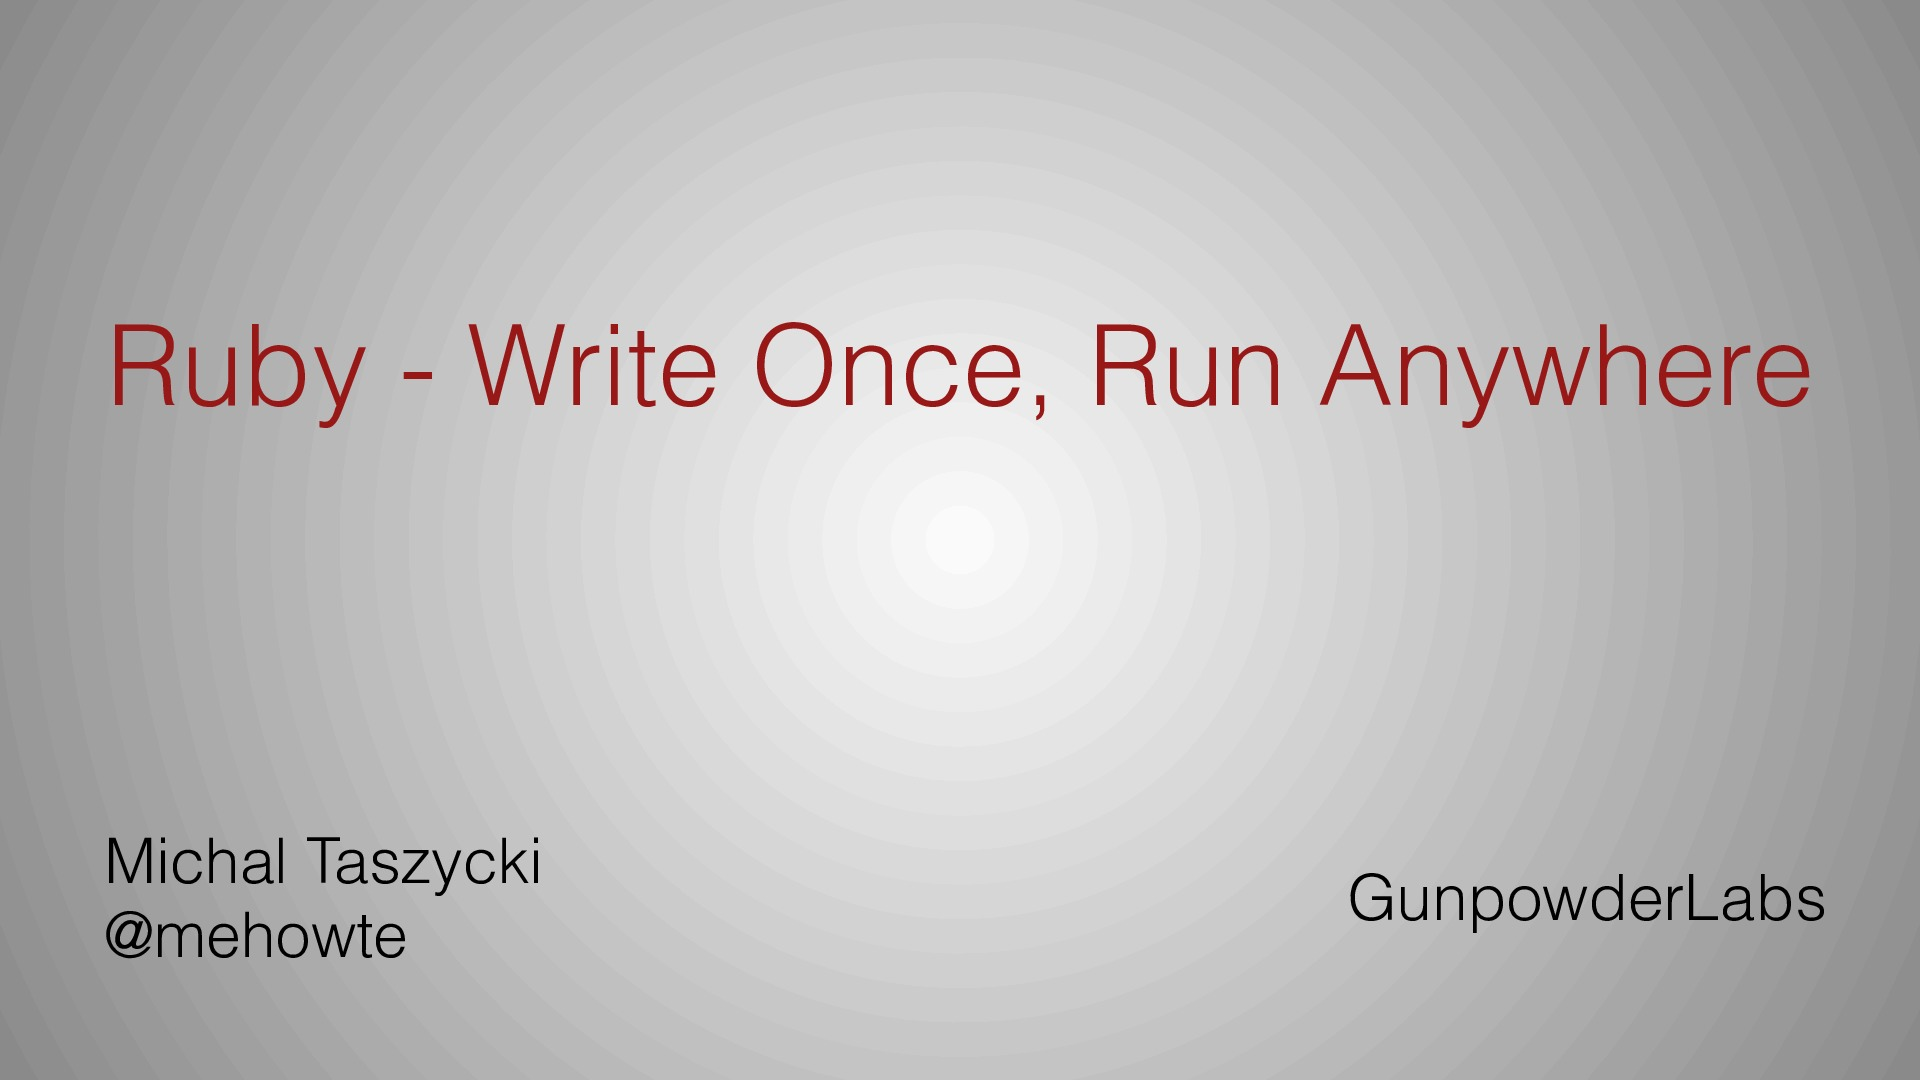 Ruby - Write Once, Run Anywhere - Polyconf 2014